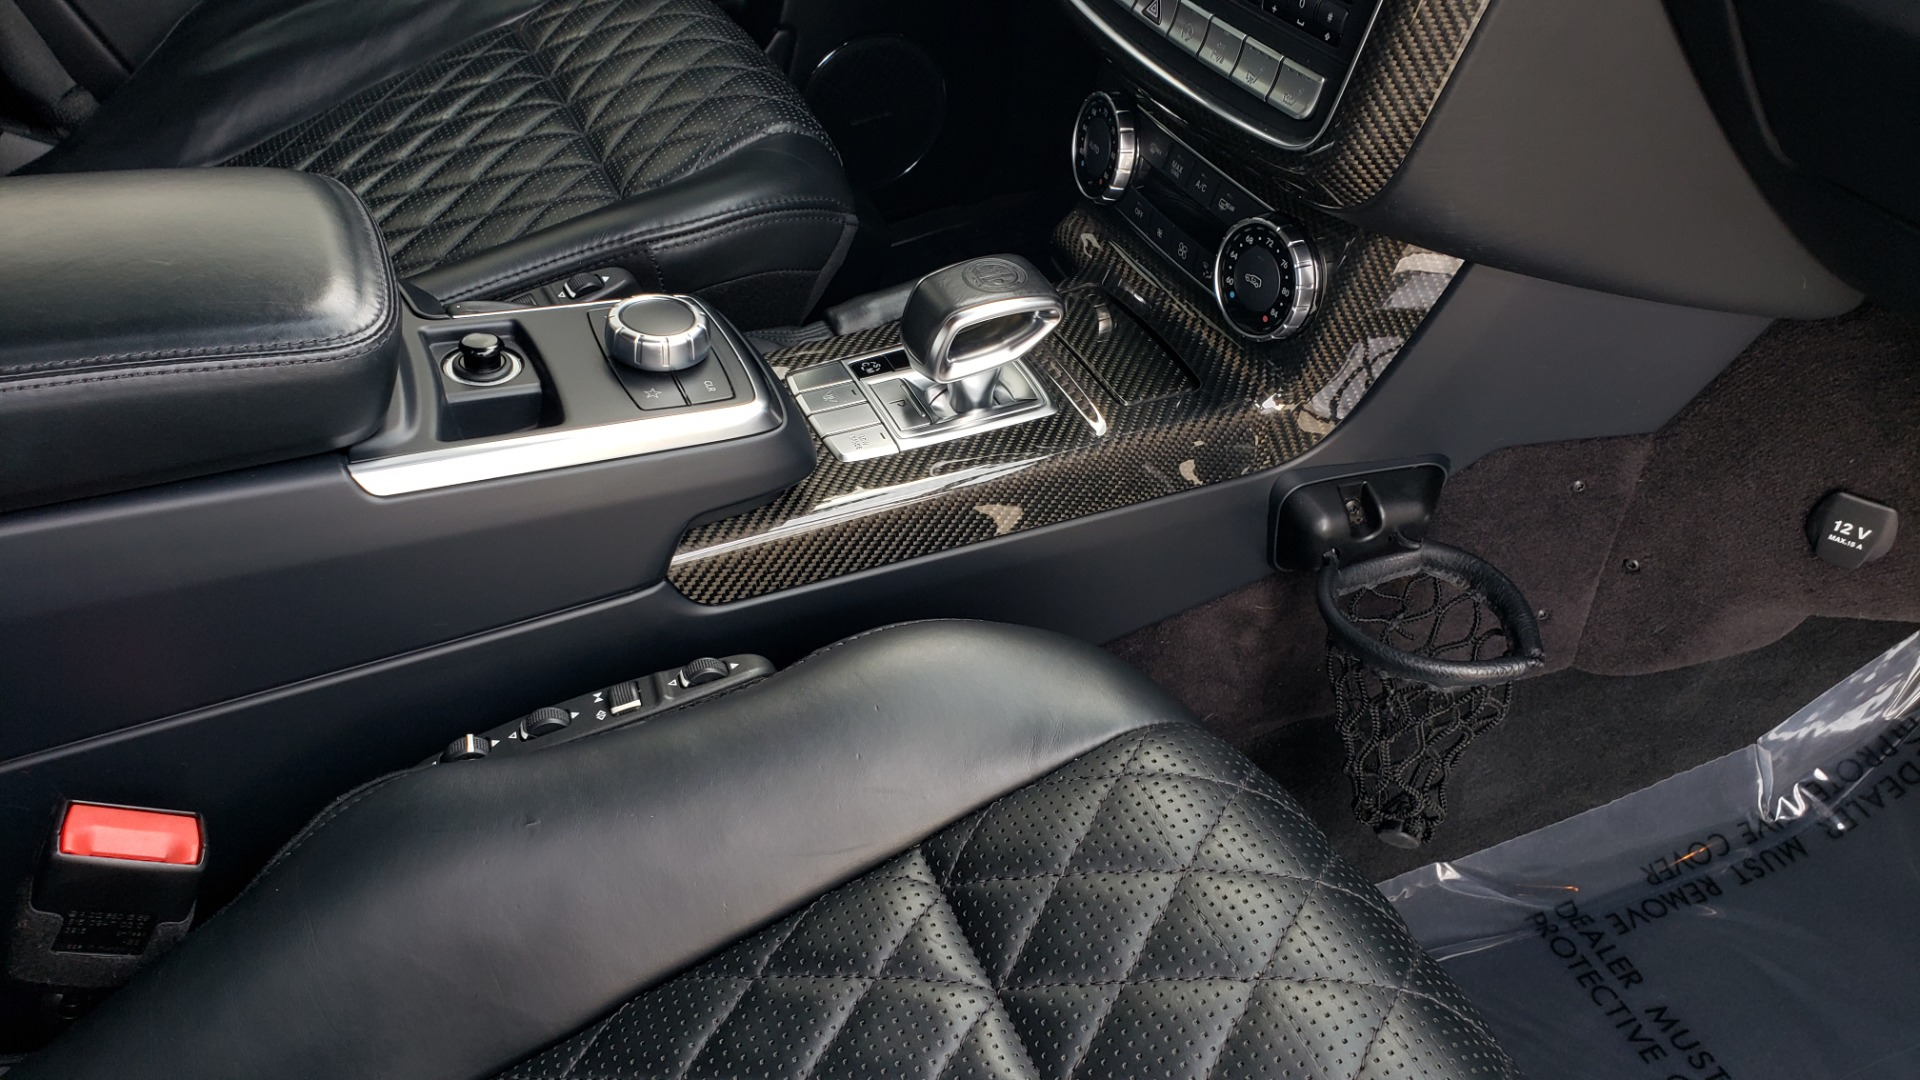 Used 2016 Mercedes-Benz G-CLASS AMG G 63 4MATIC / NAV / SUNROOF / H/K SND / ENT SYS / REARVIEW for sale $99,000 at Formula Imports in Charlotte NC 28227 27